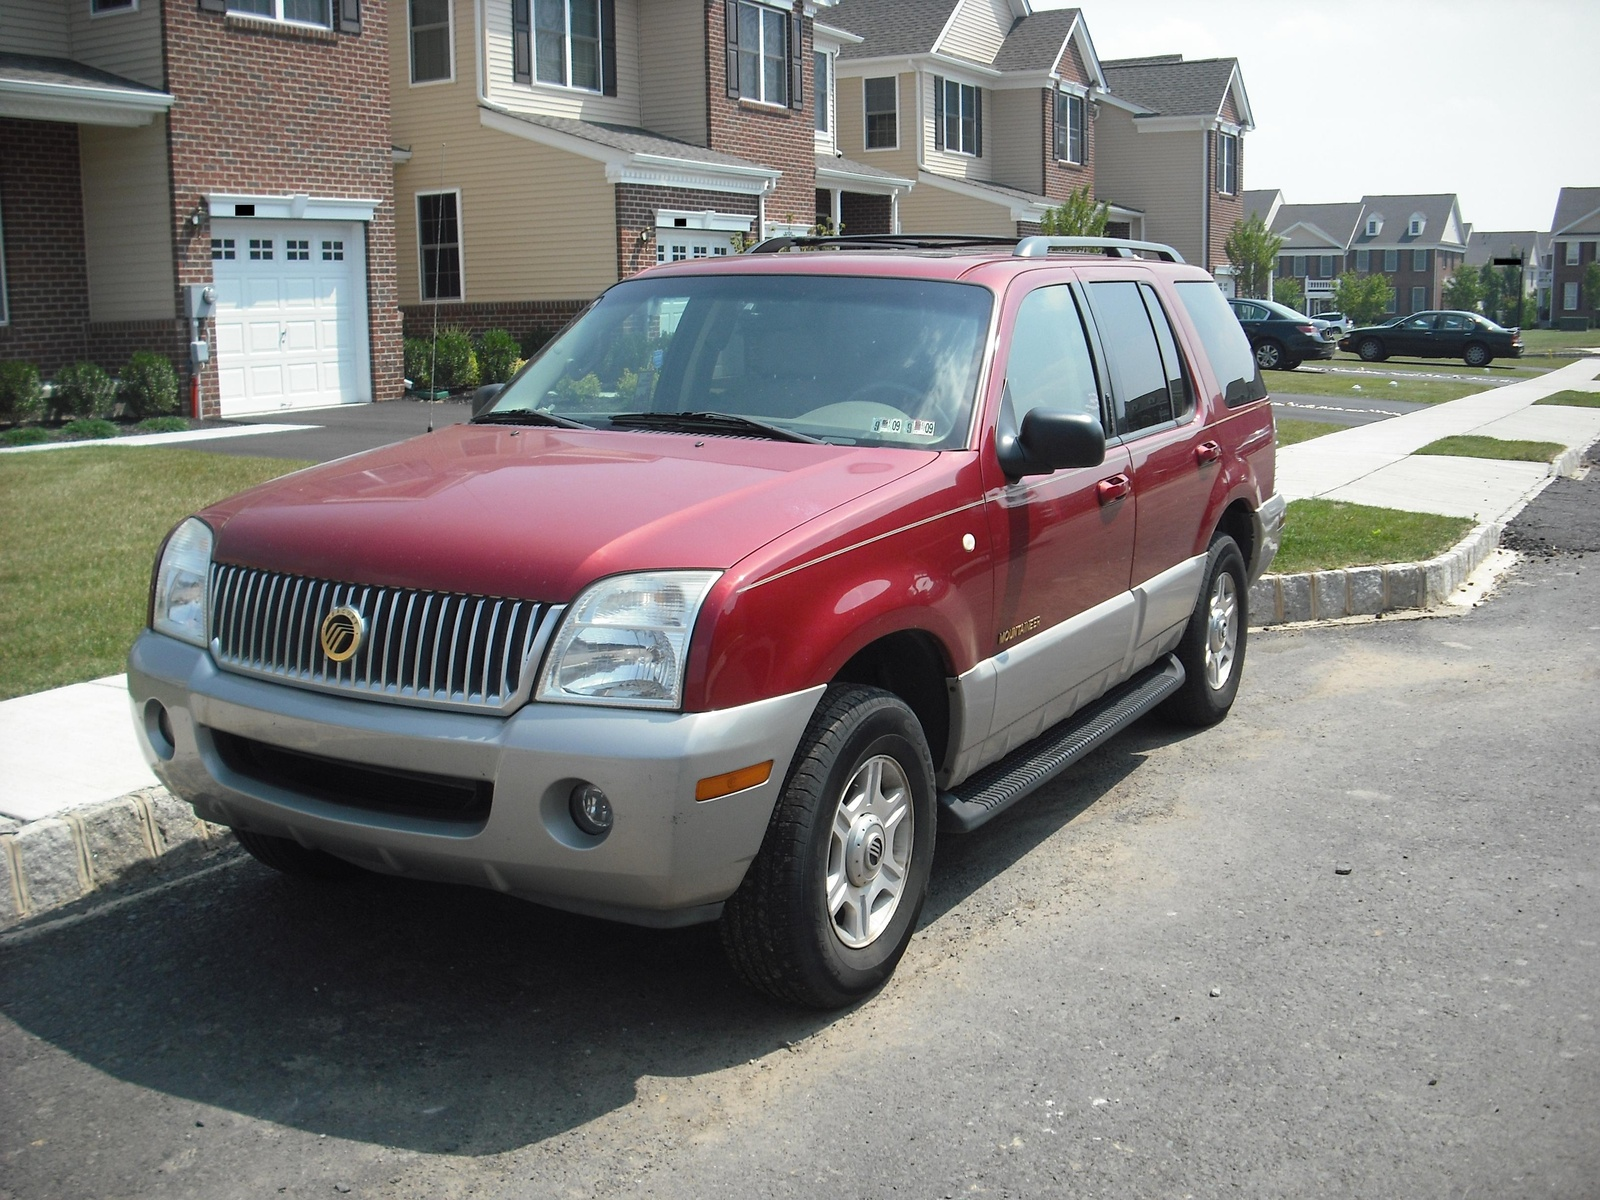 Picture of 2001 Mercury Mountaineer 4 Dr STD AWD SUV